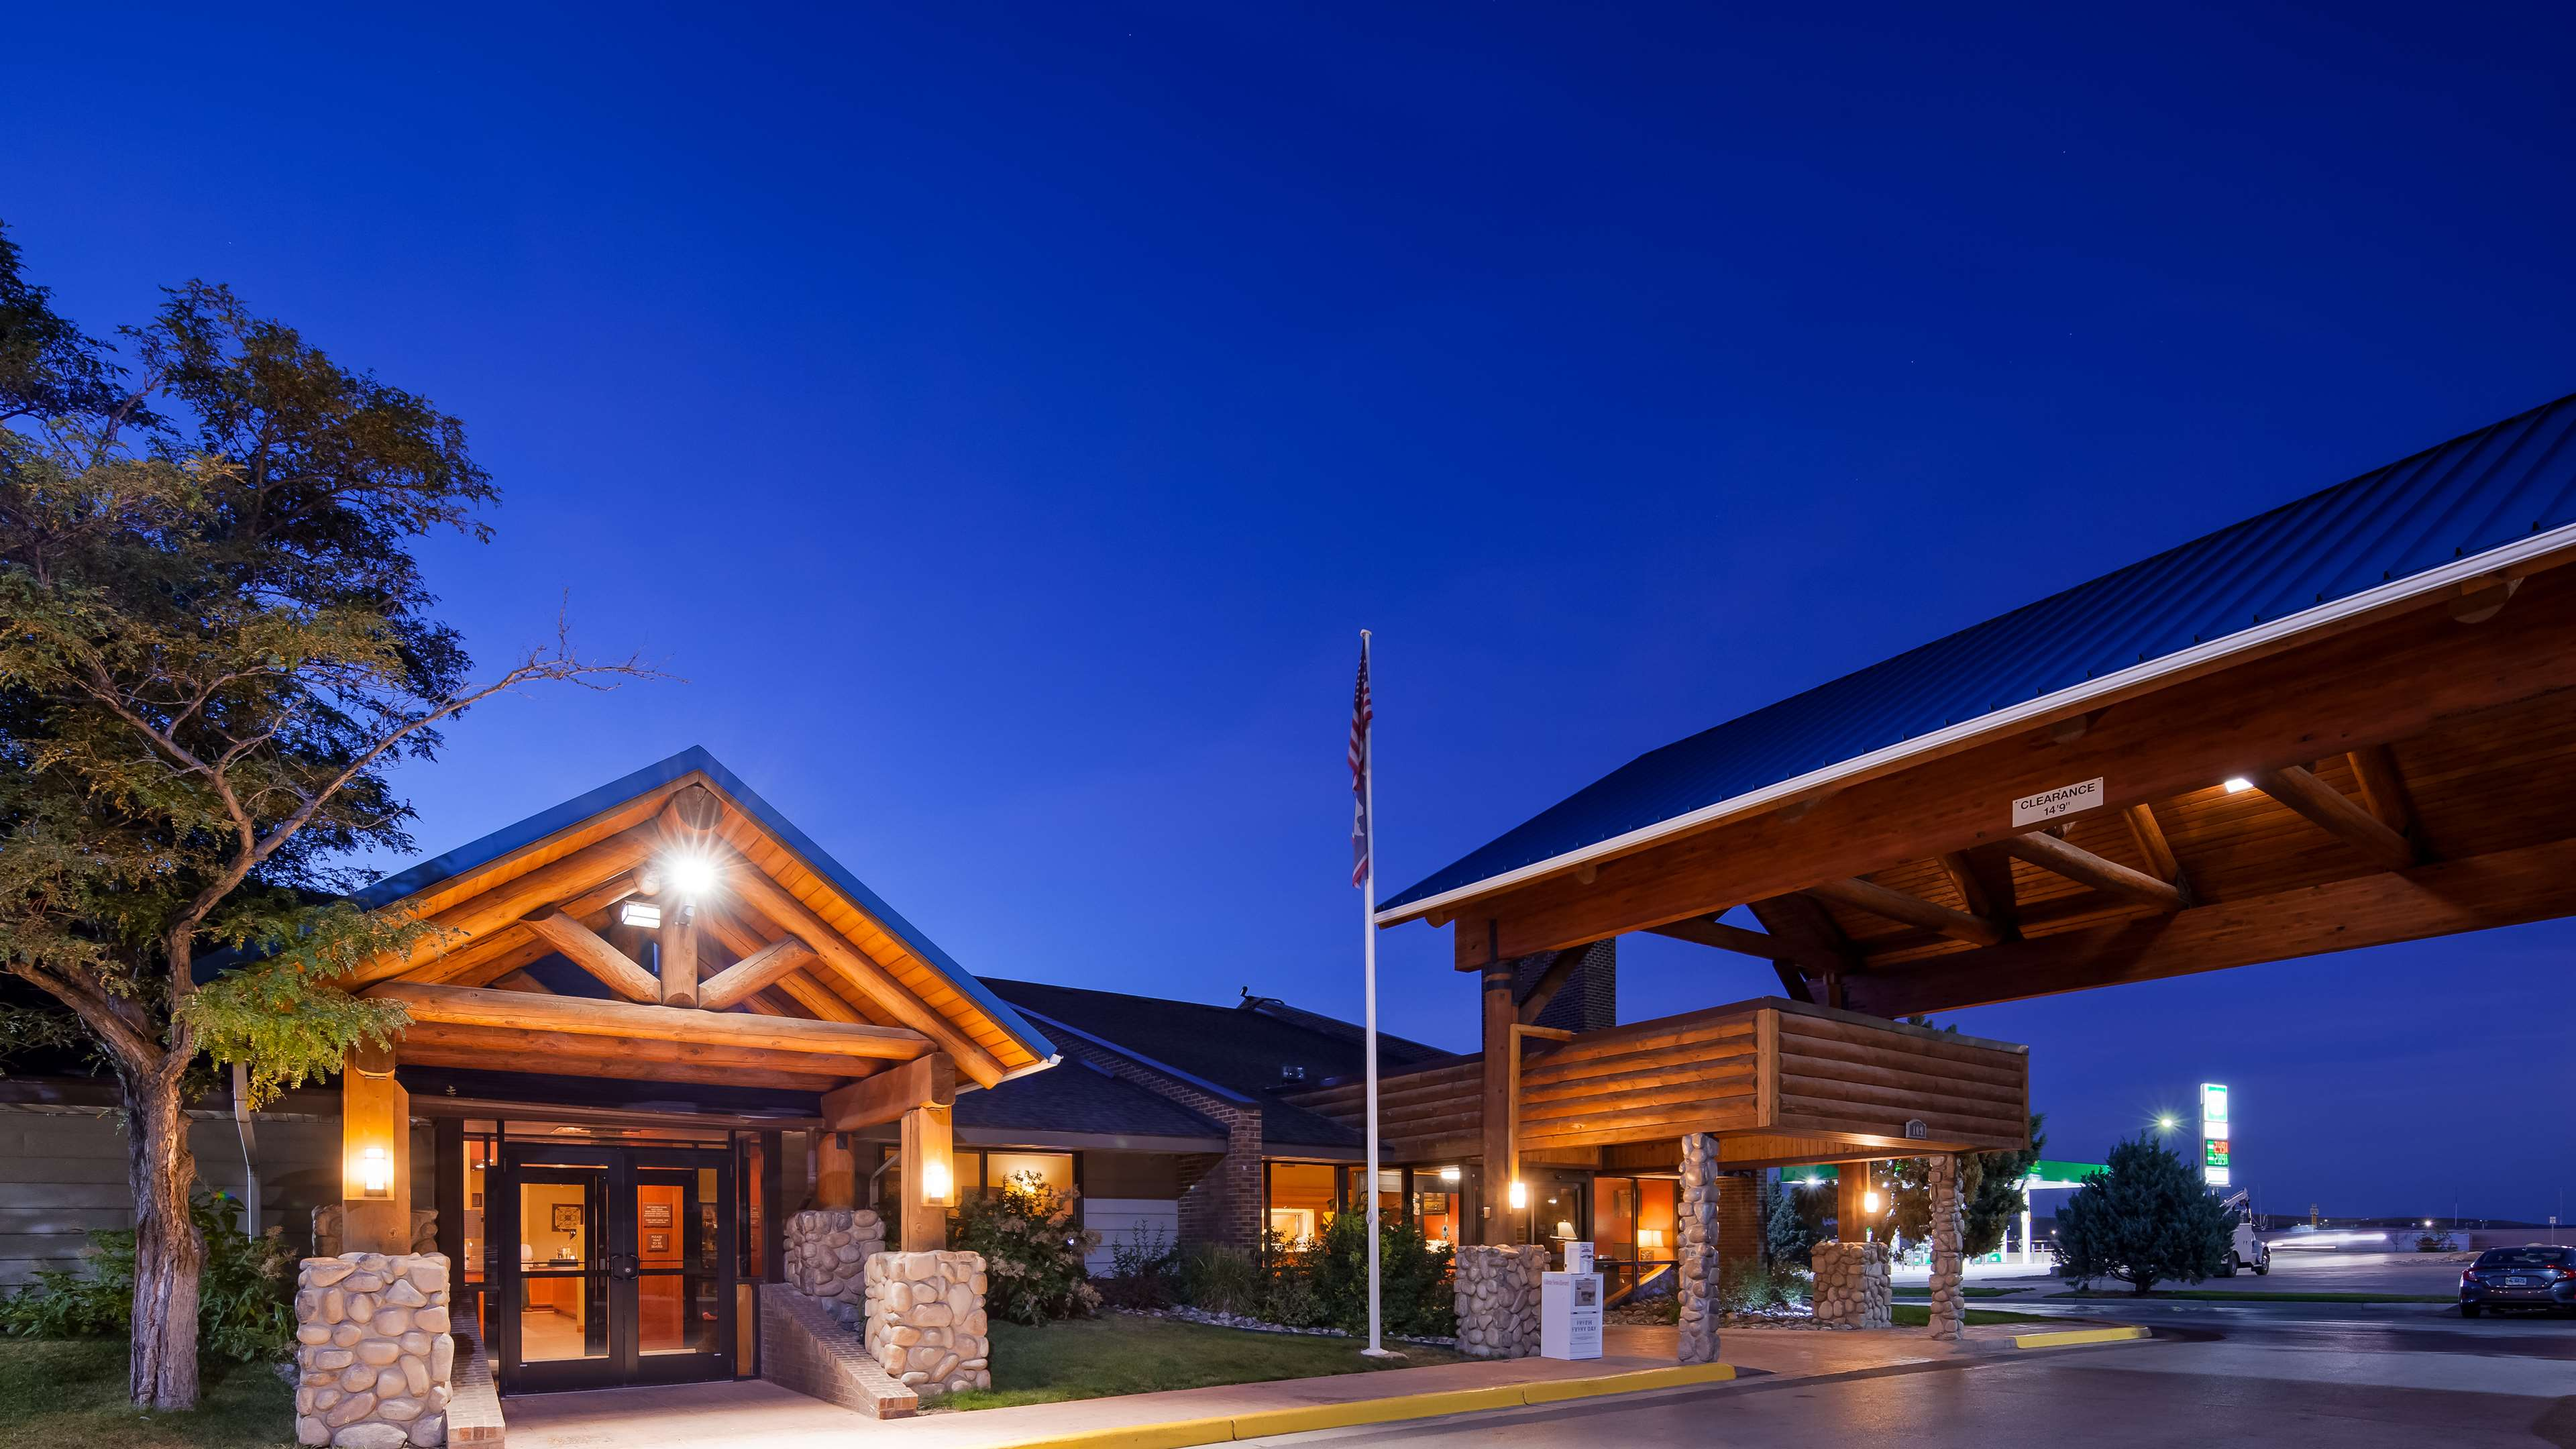 Best Western Tower West Lodge image 0